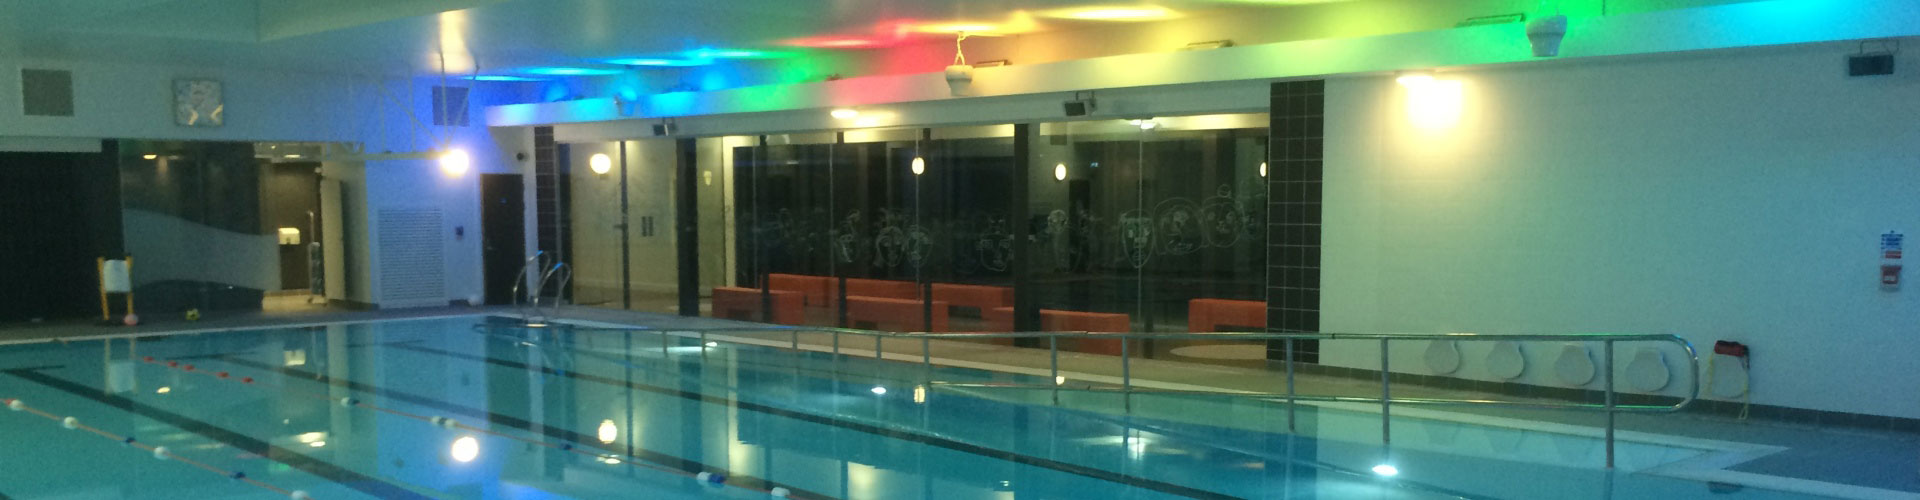 Airius Cooling Fans Maintaining Comfort in a Swimming Pool